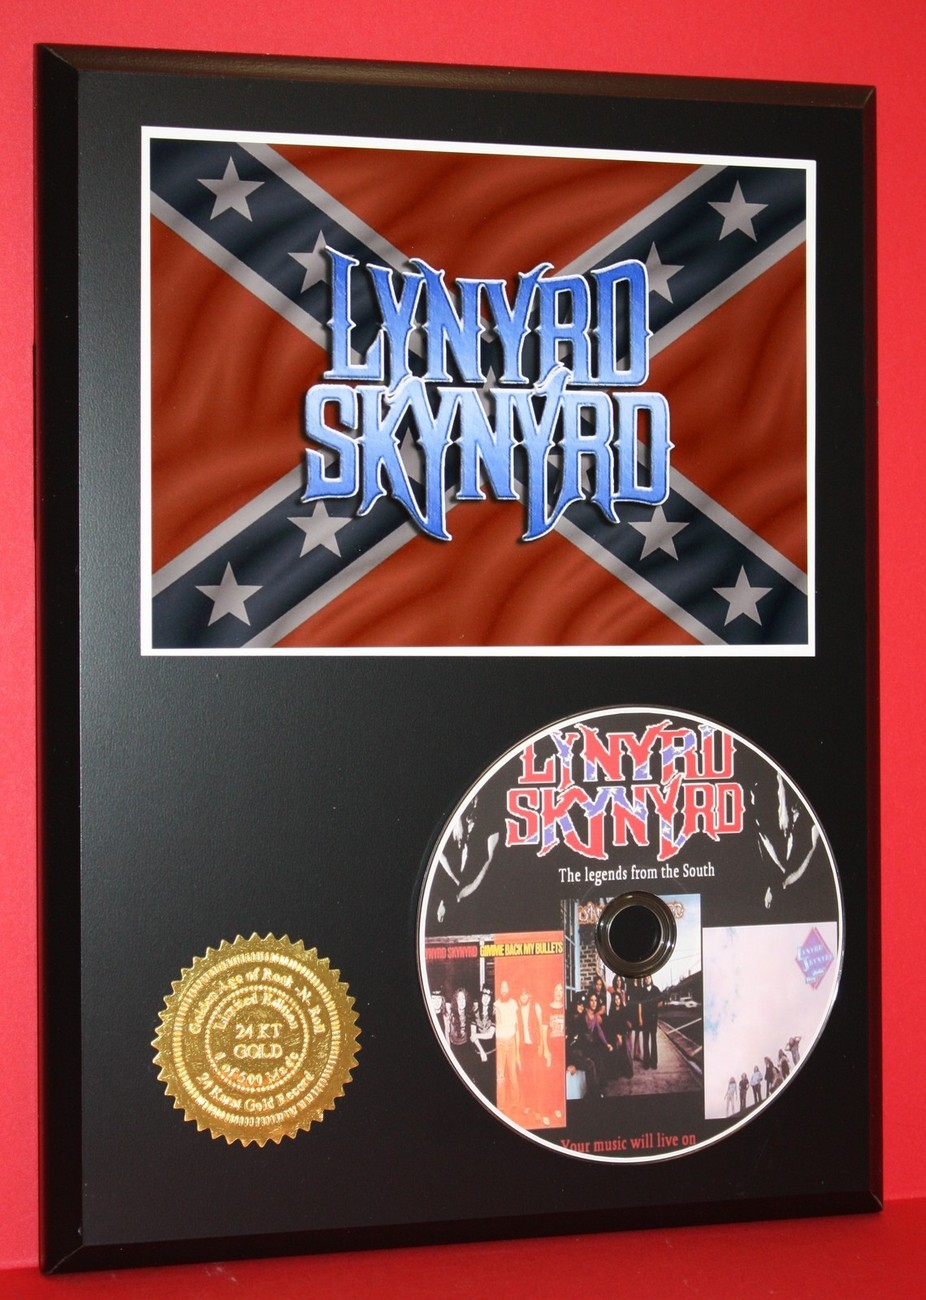 LYNYRD SKYNYRD LIMITED EDITION PICTURE CD DISC COLLECTIBLE RARE MUSIC DISPLAY